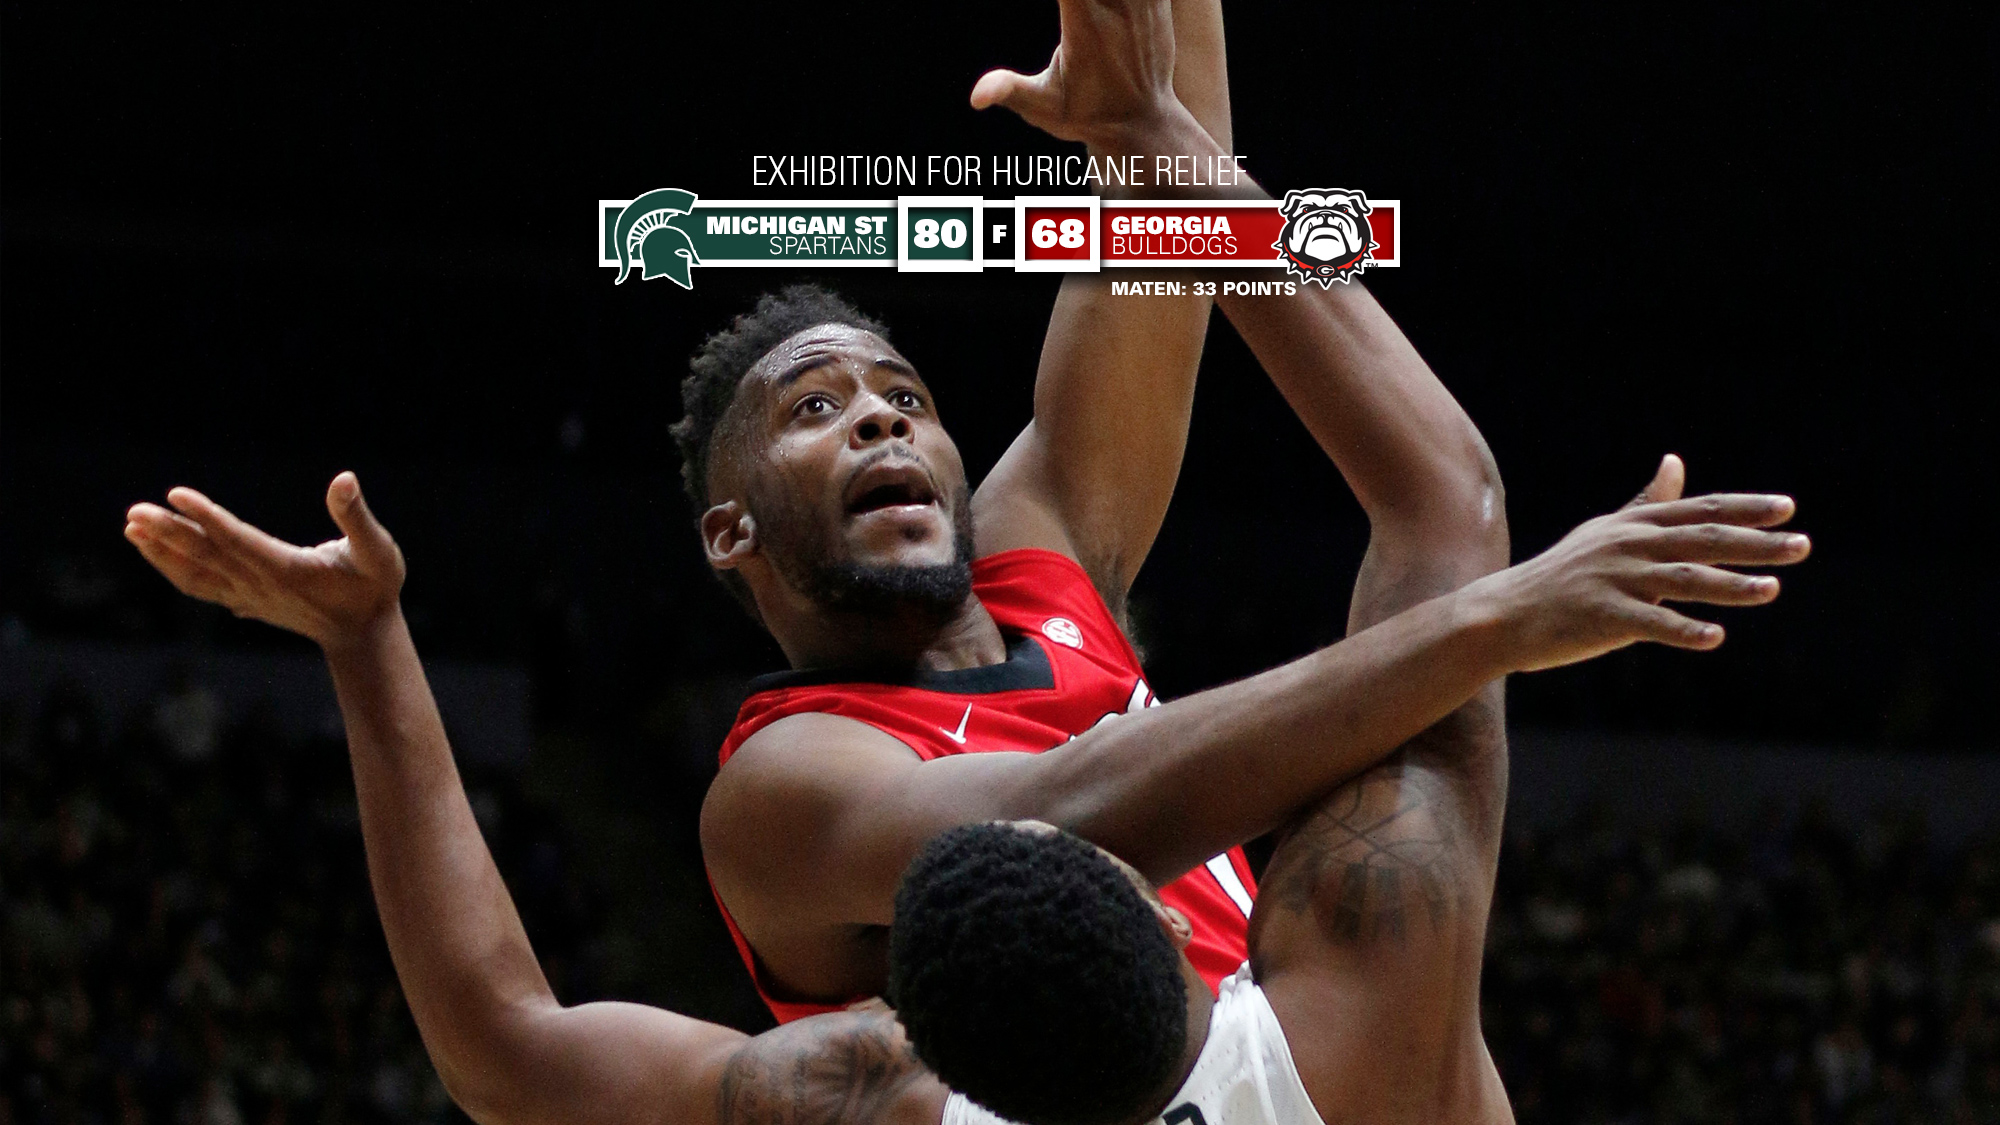 Georgia vs. Michigan State men's basketball exhibition game. (Photo from Georgia Sports Communication)